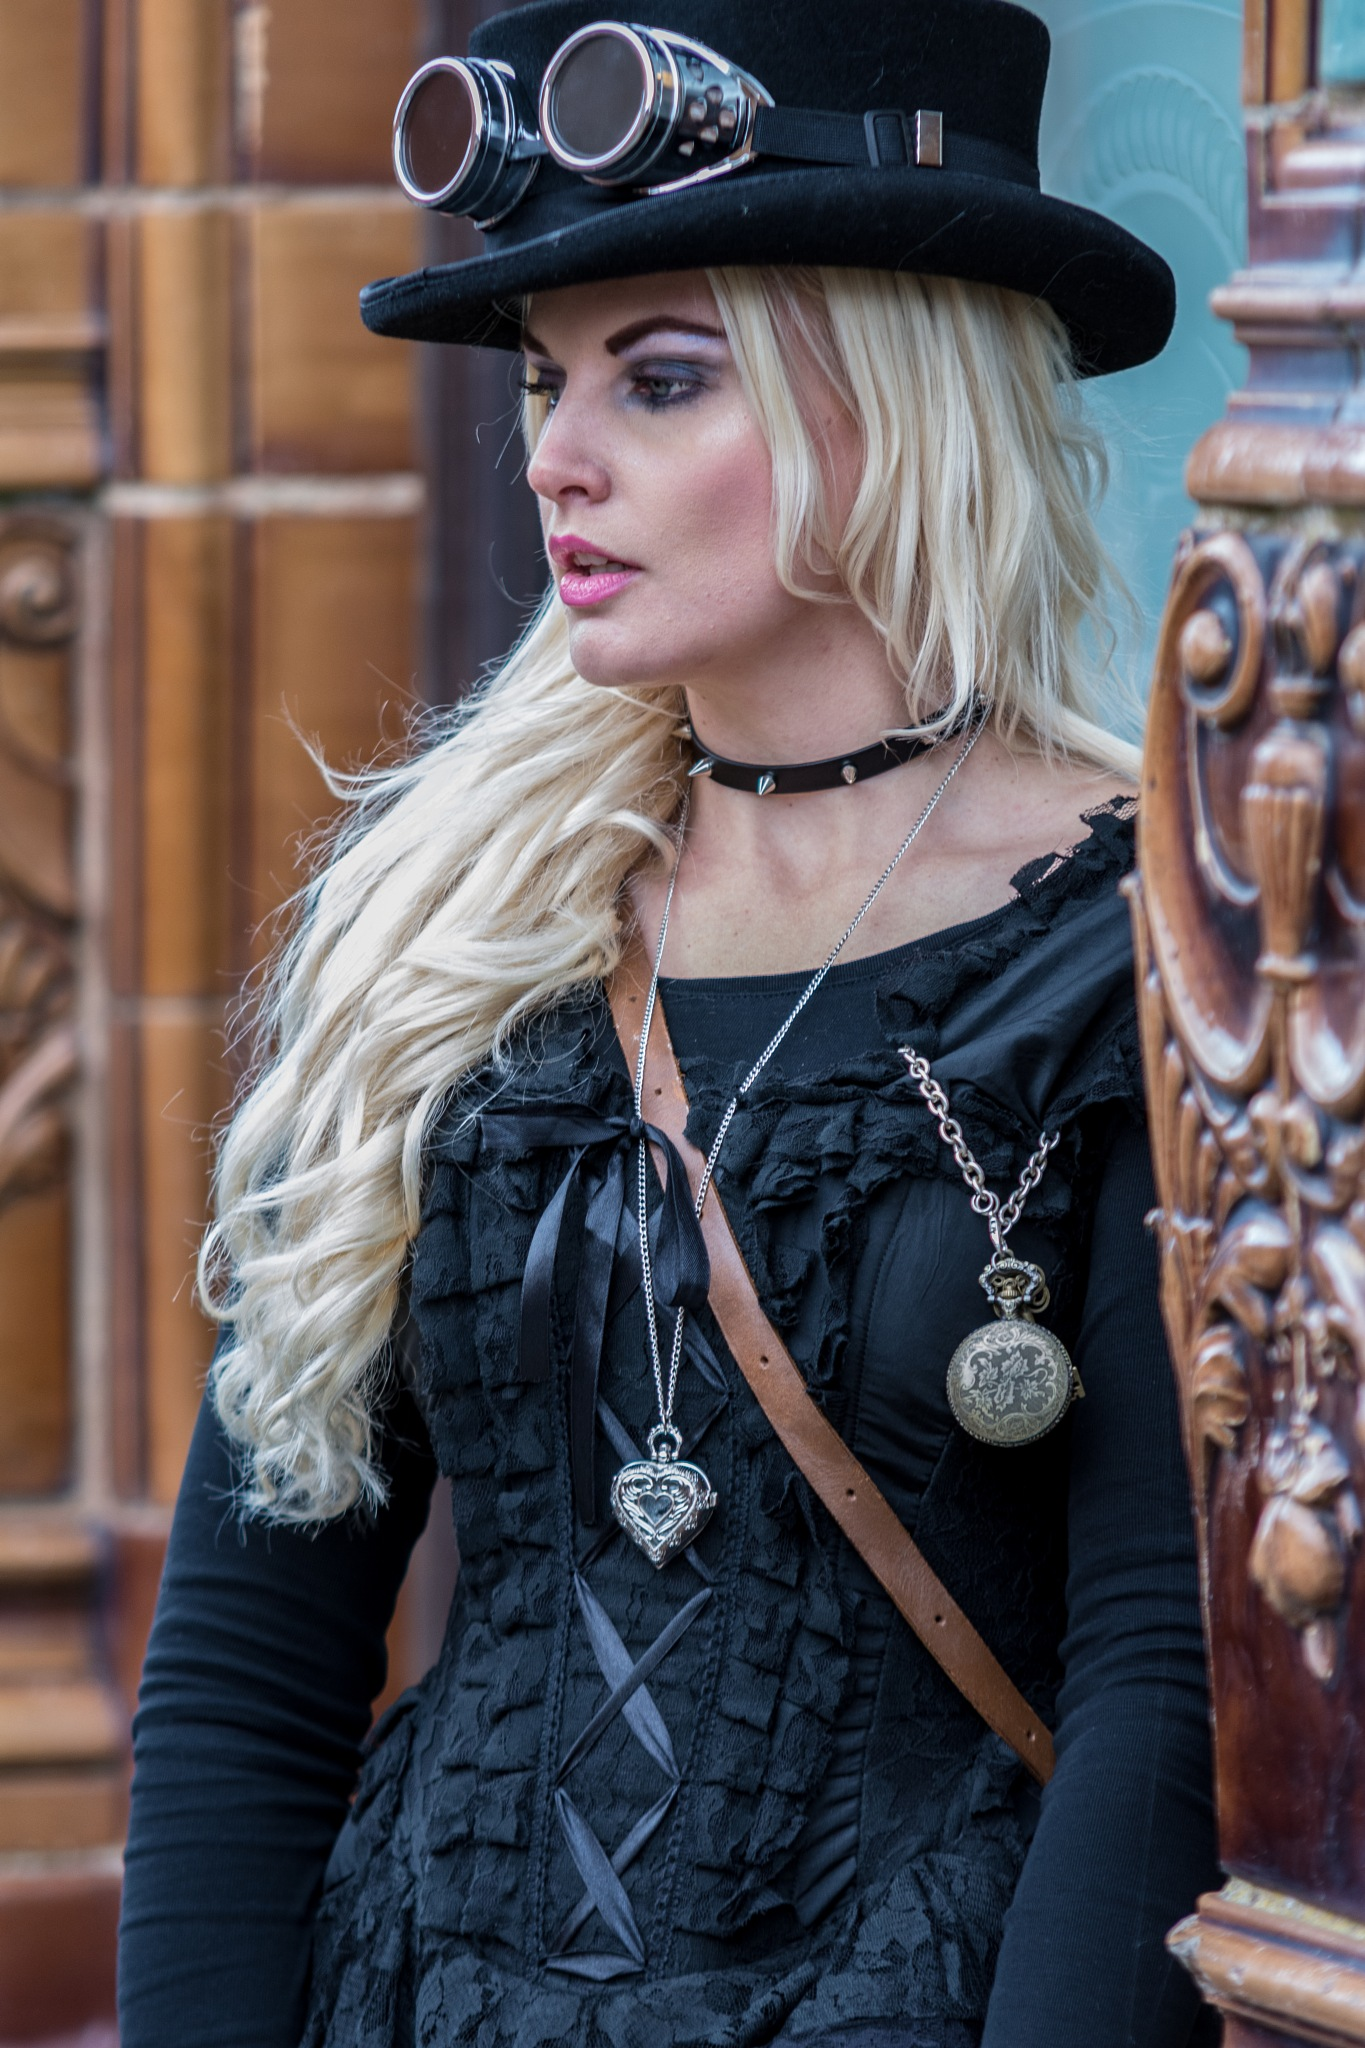 Steampunk beauty by D Whitehead